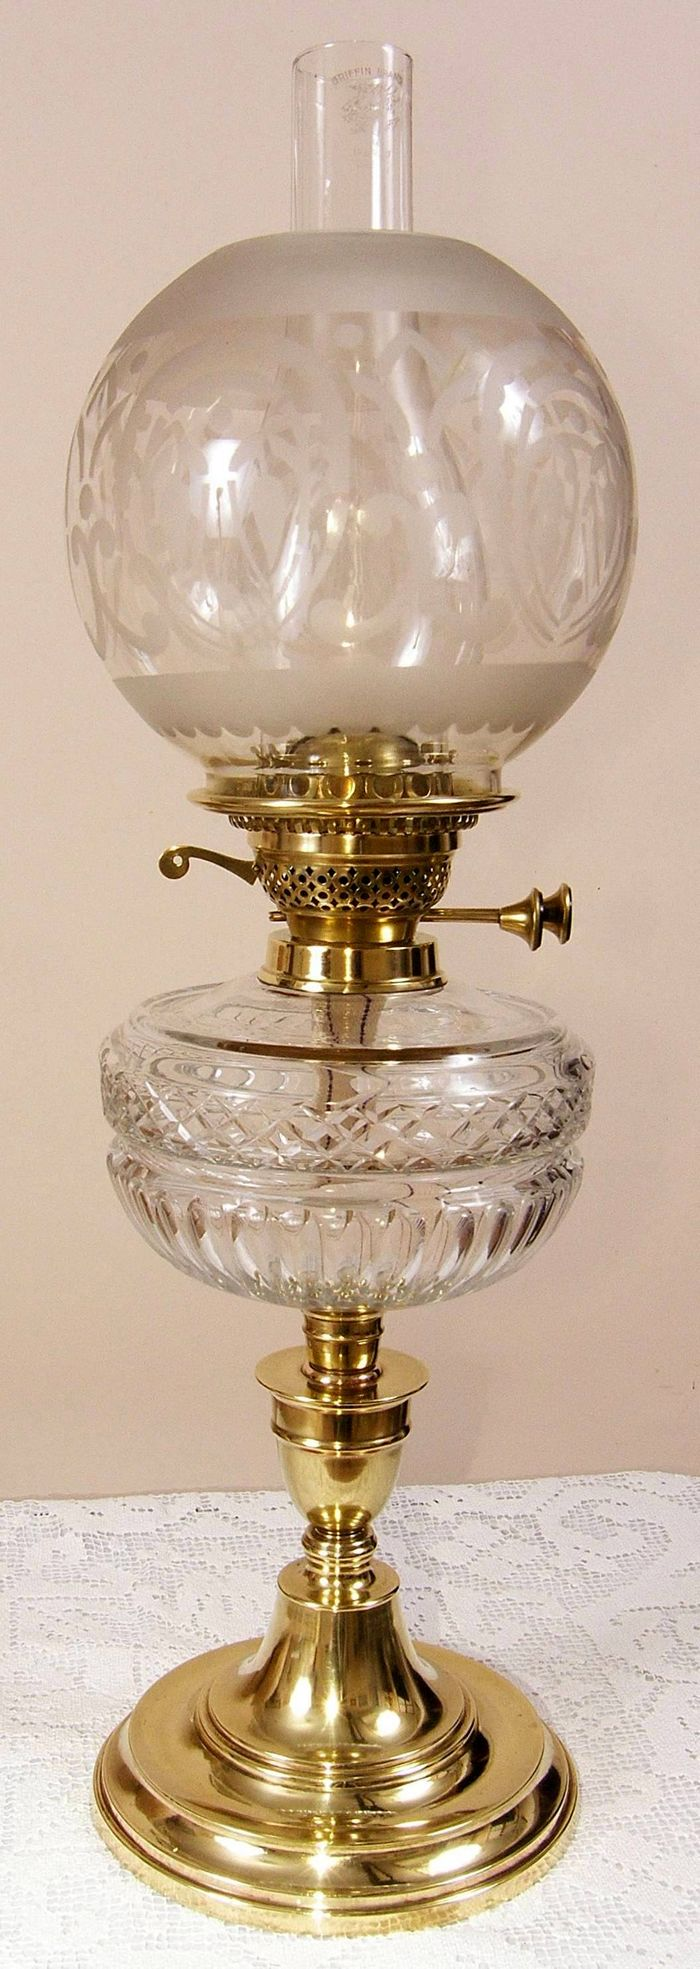 Antique Oil Lamps: Oil Lamp of superior quality online